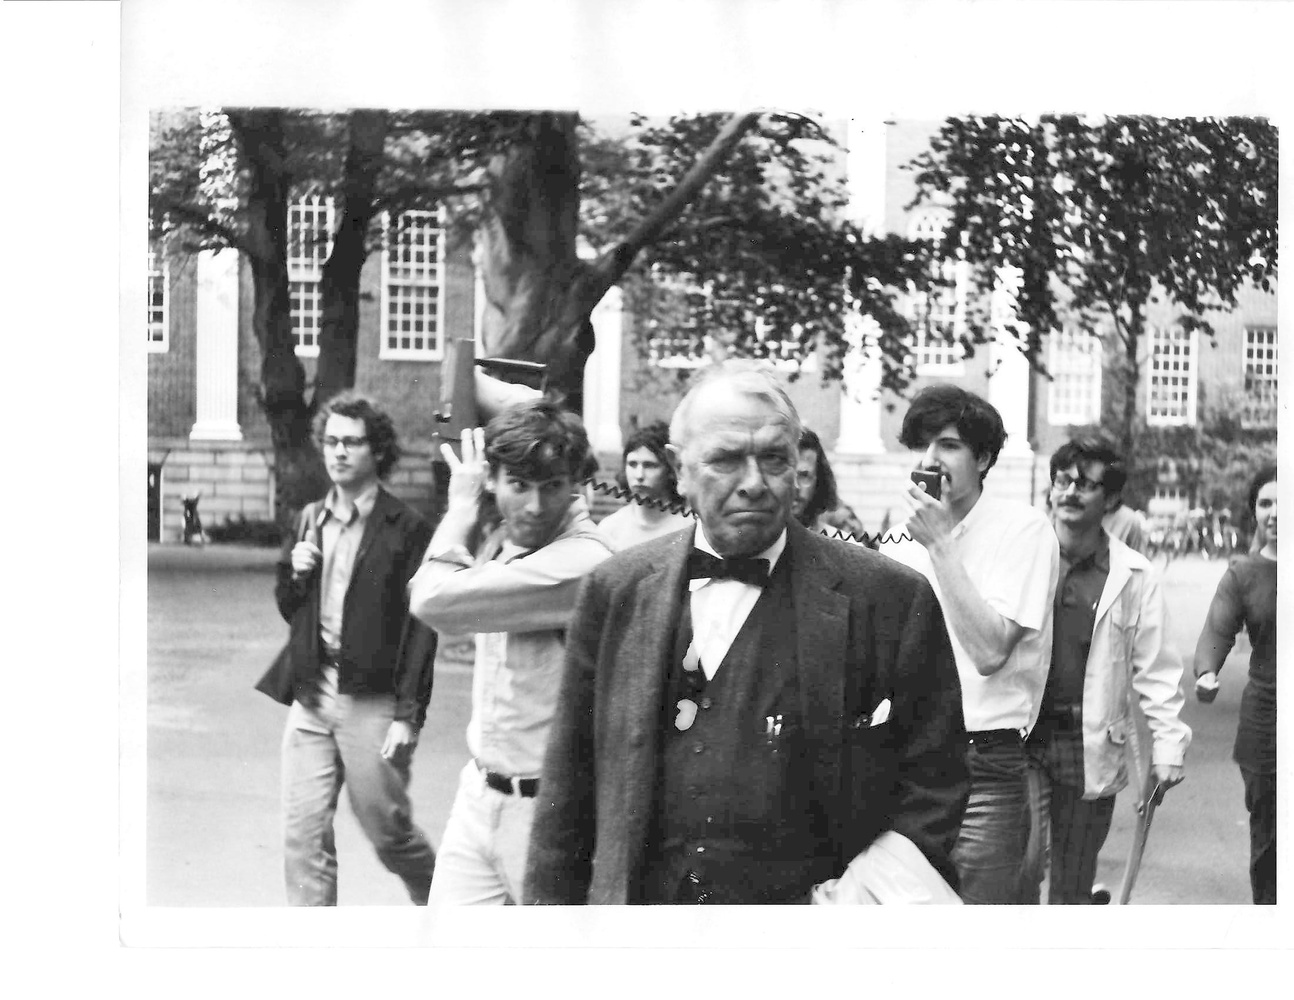 Students for a Democratic Society members tail and shout at Sargeant Kennedy '28, the Harvard Corporation secretary, through Harvard Yard. Ira D. Helfand '71 is pictured holding a bullhorn.